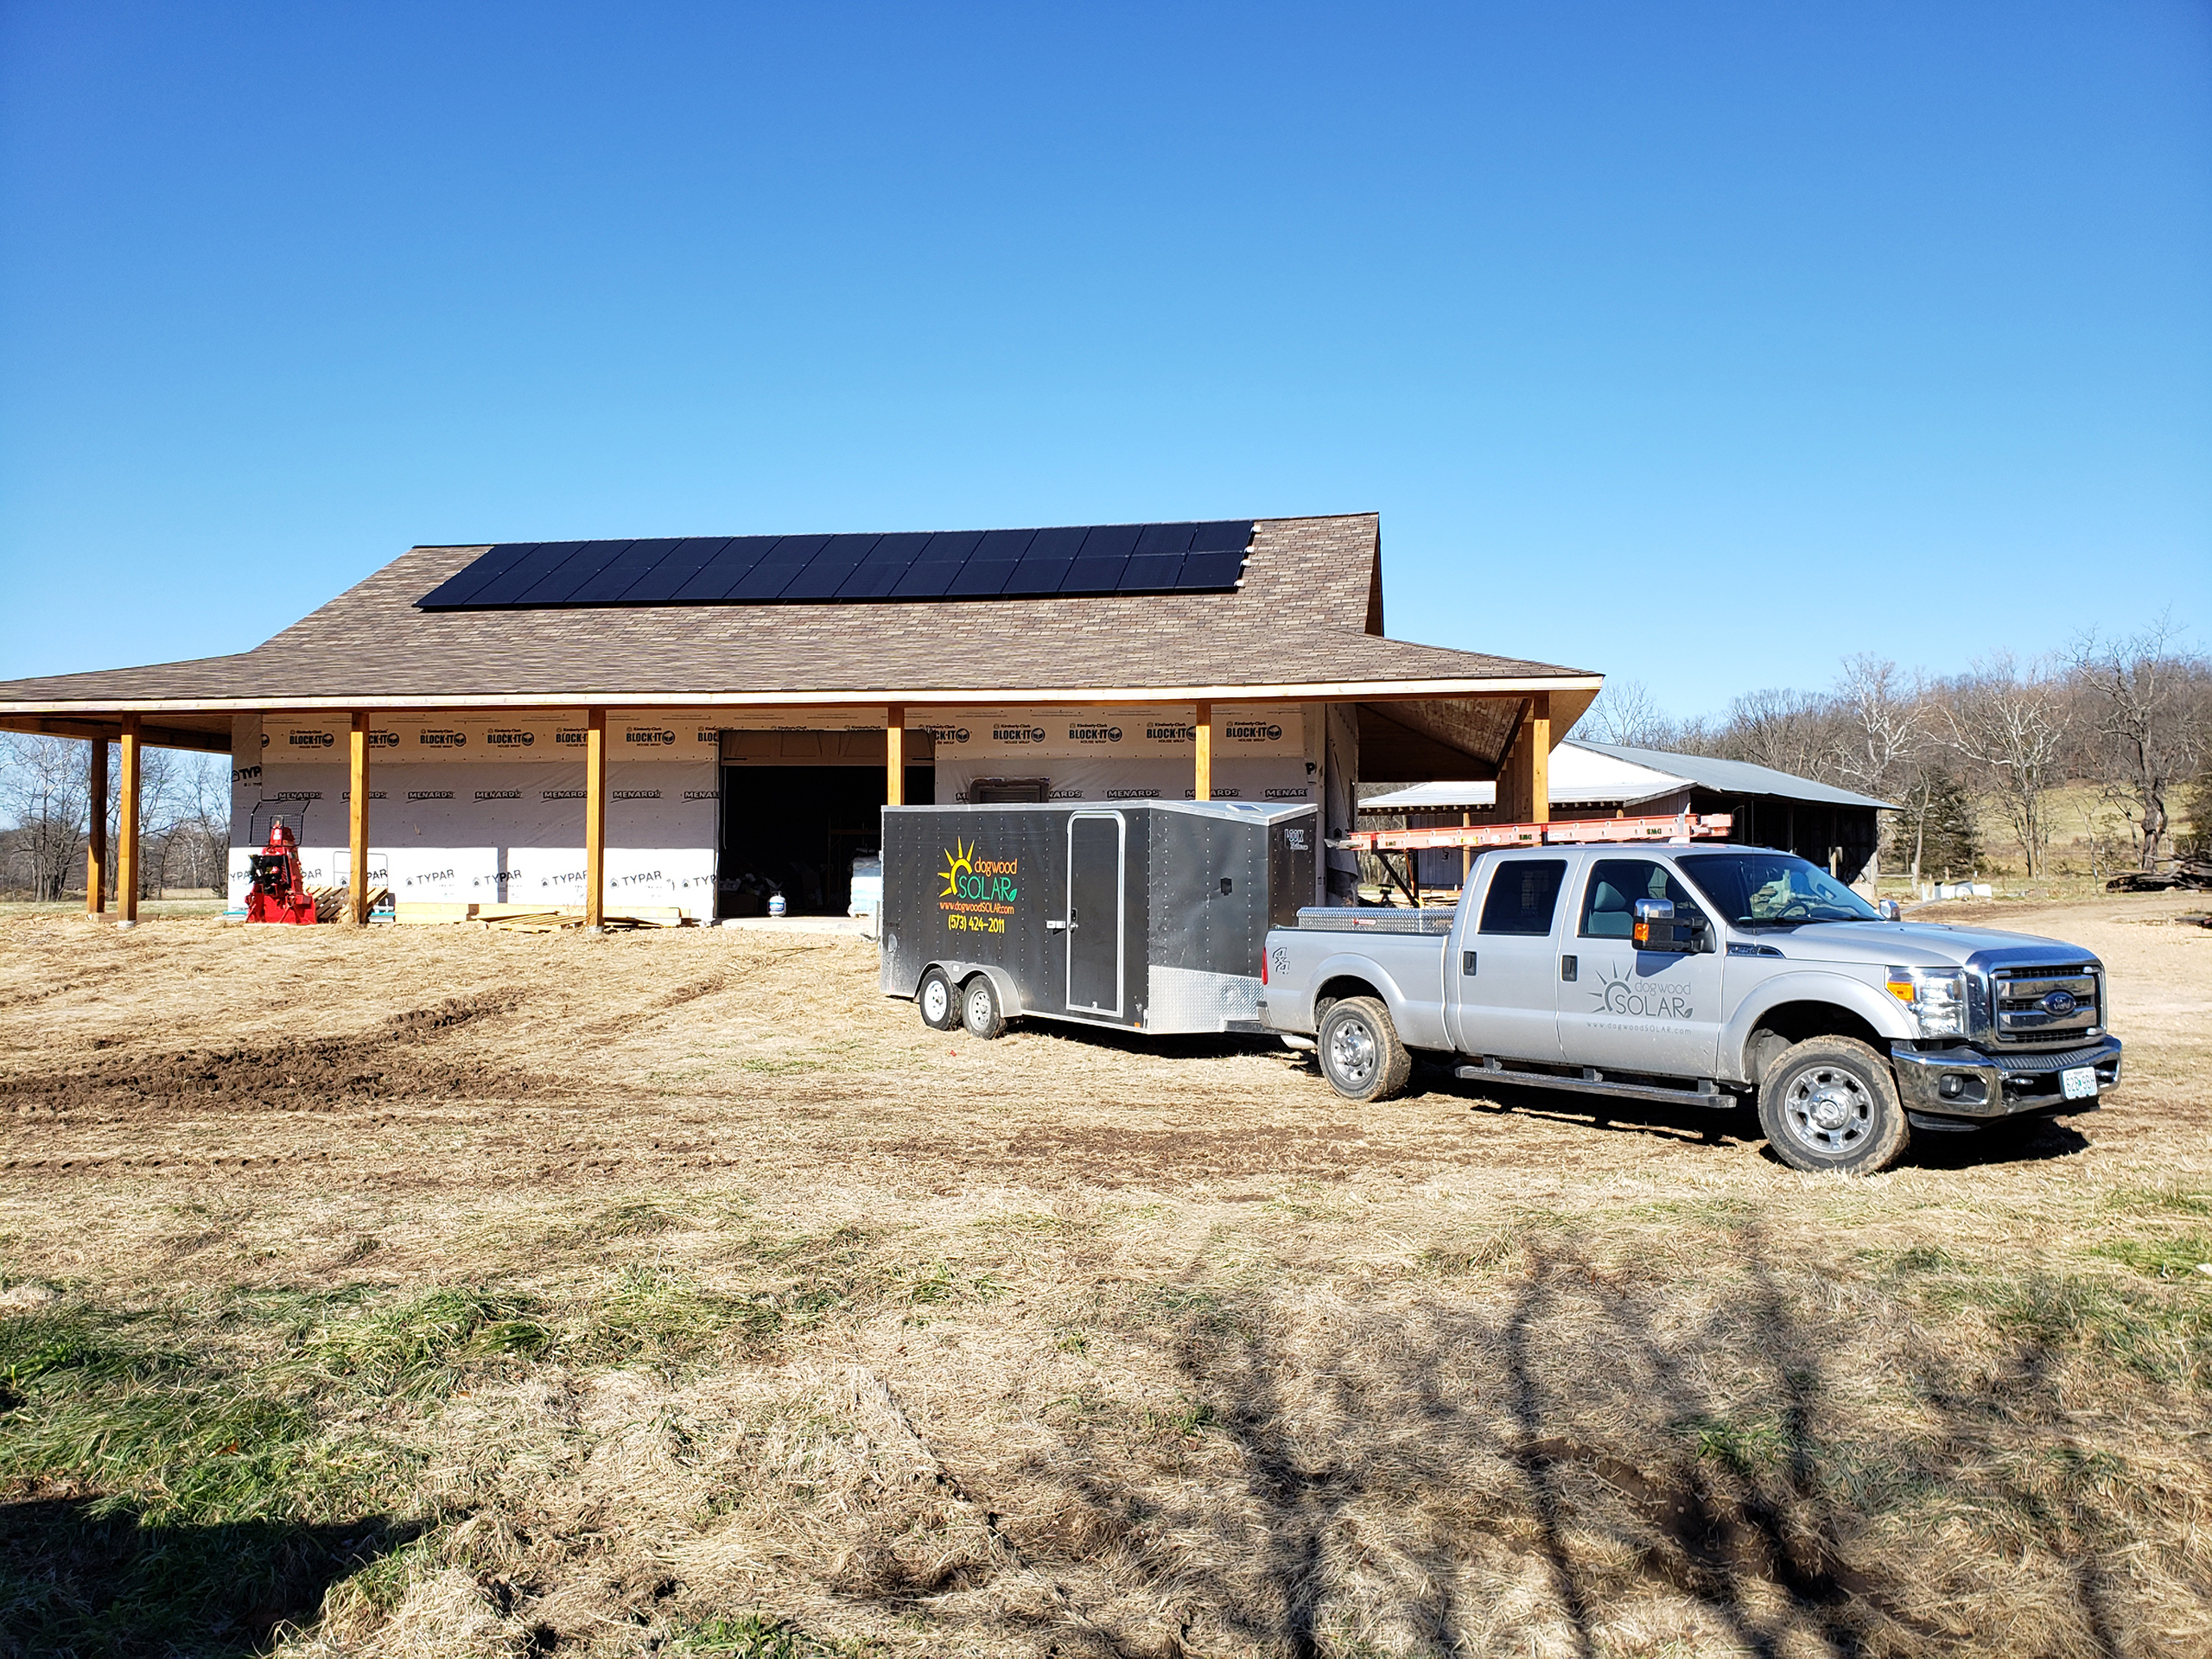 The Dogwood Solar truck and box trailer are parked in front of a home that is under construction. A perfect grid of solar panels are seen on the roof with a blue sky above.